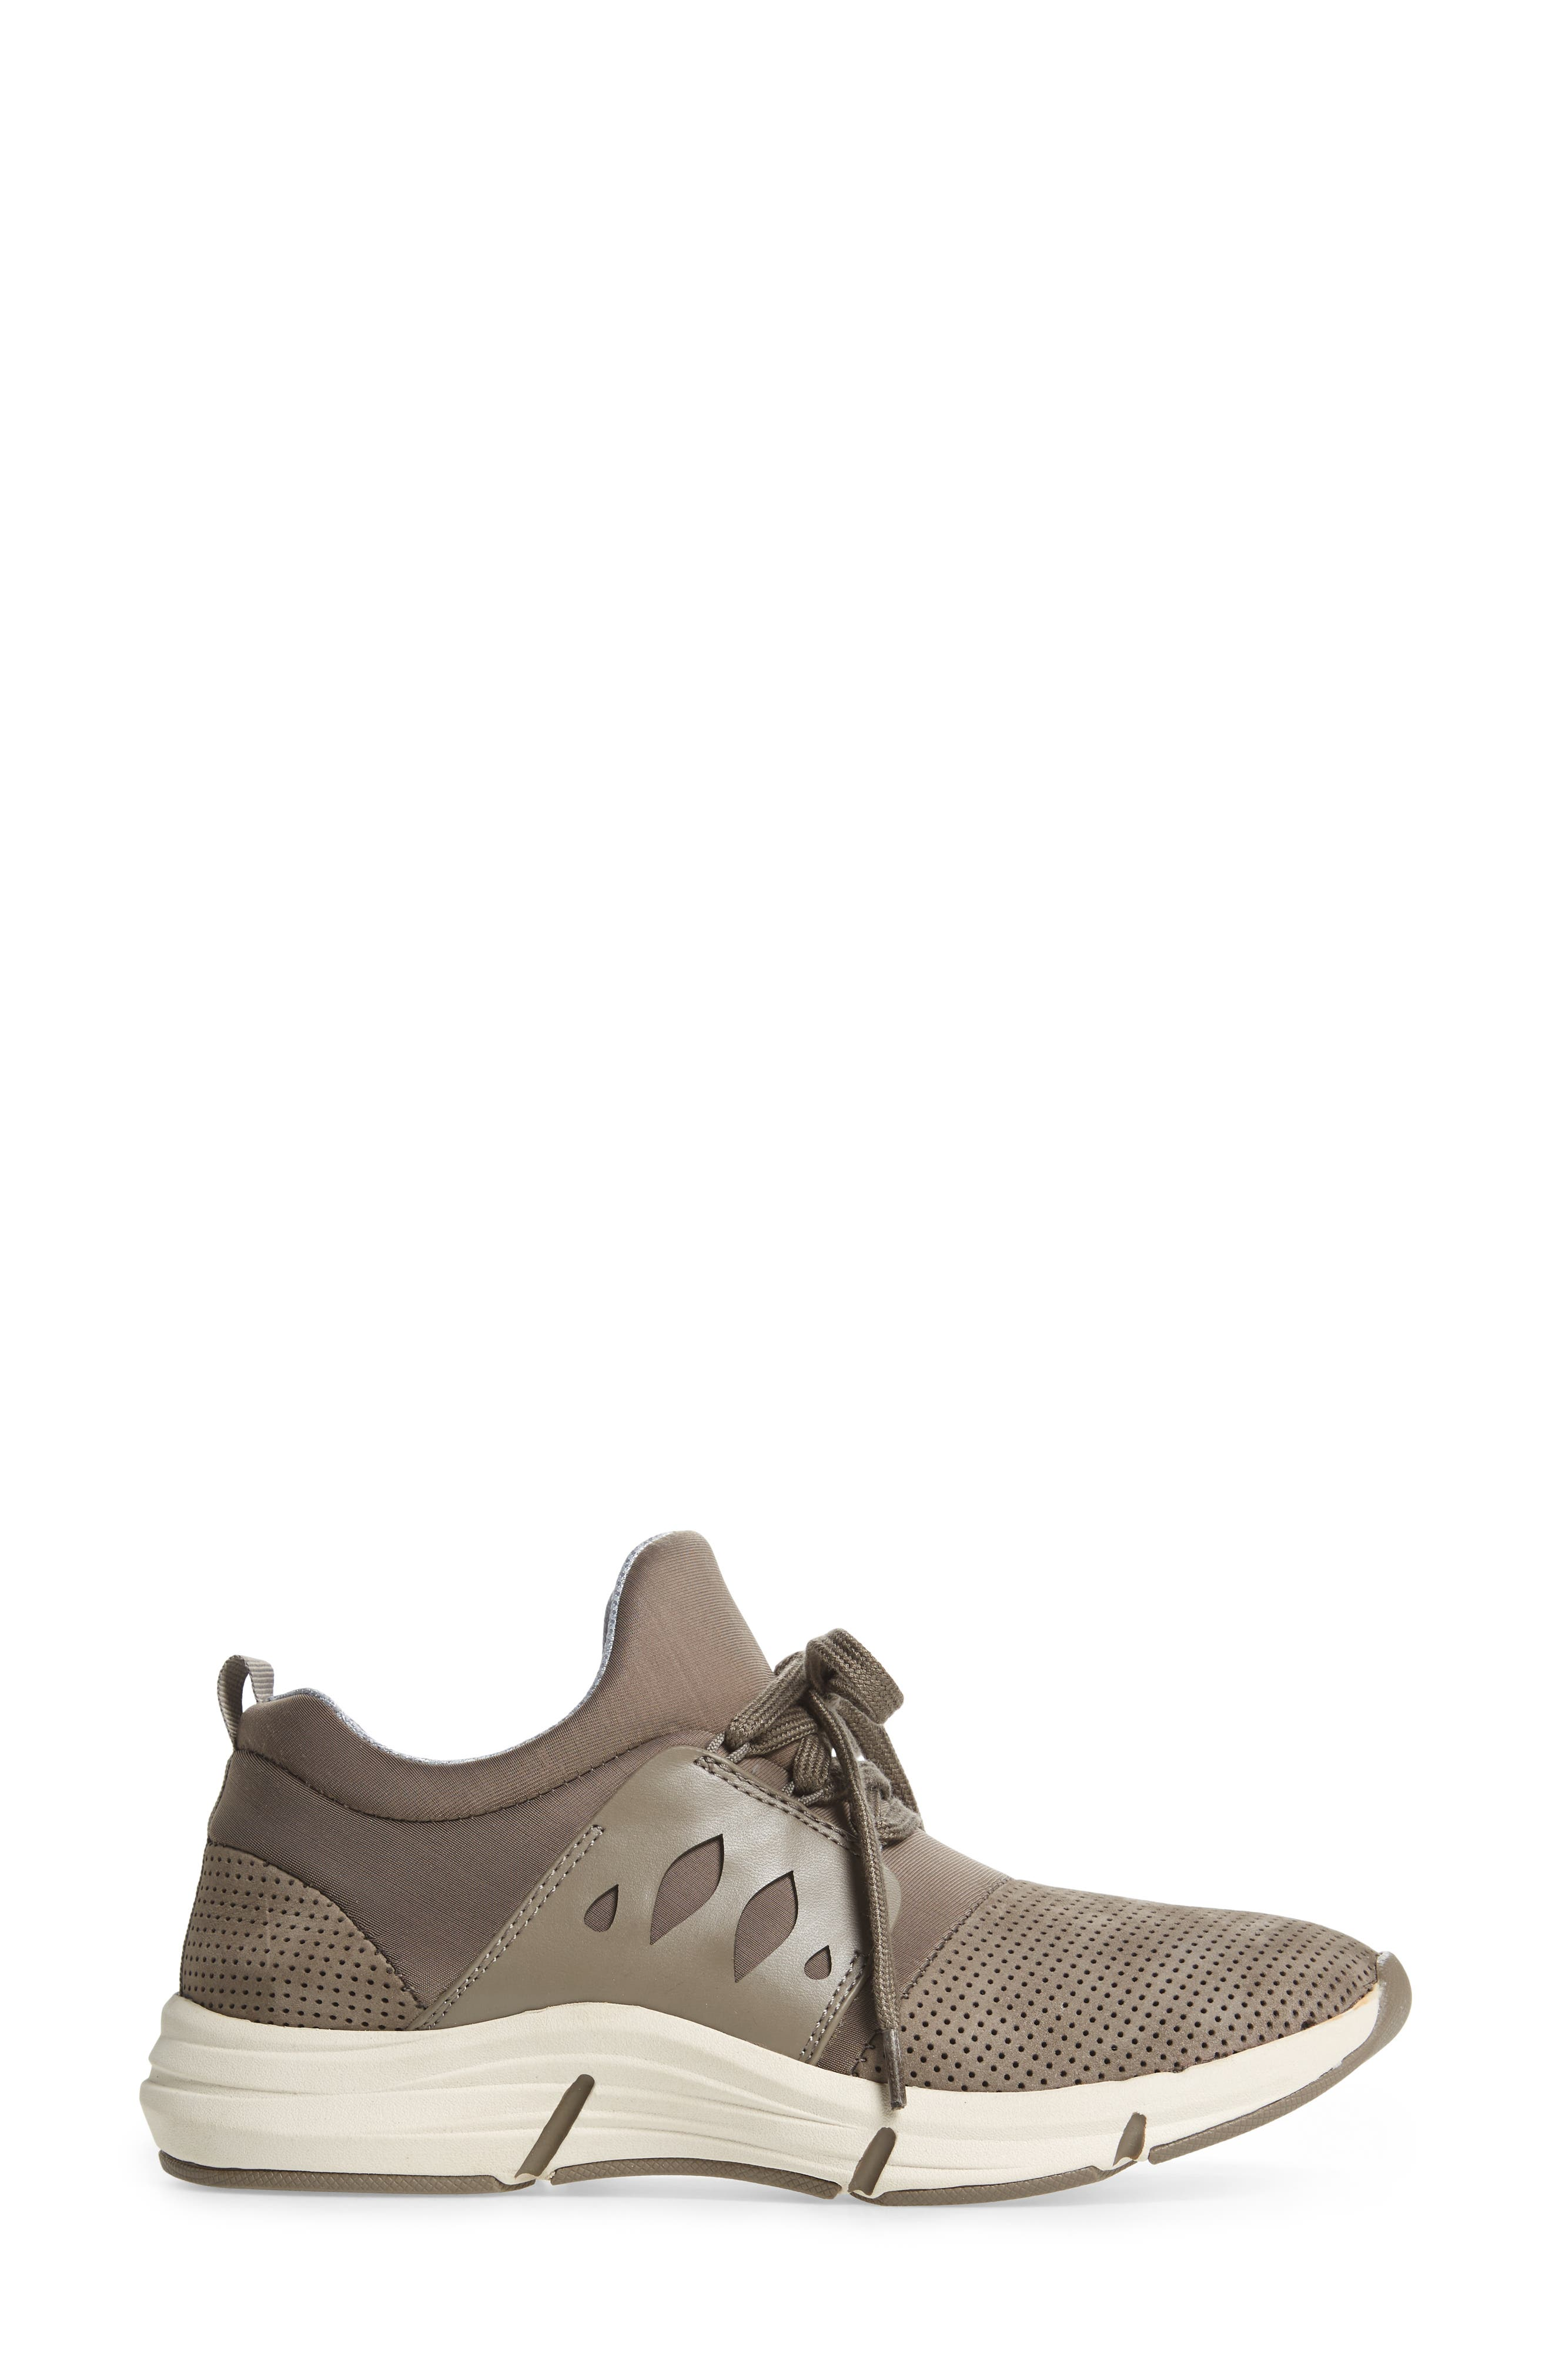 Ordell Sneaker,                             Alternate thumbnail 8, color,